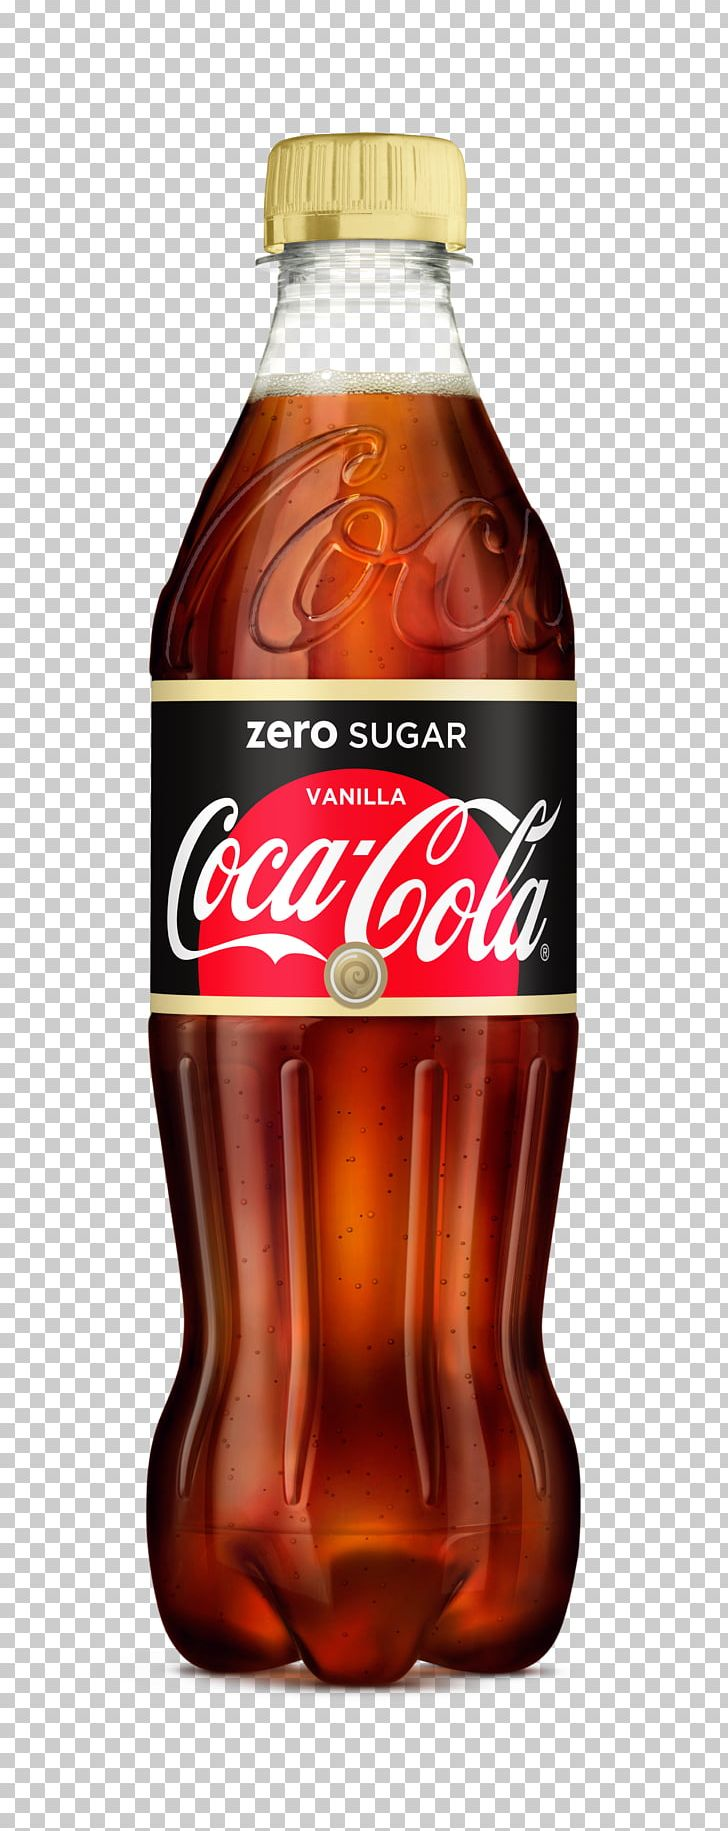 Coca-Cola Cherry Fizzy Drinks Fanta PNG, Clipart, Beverage Can, Bottle, Carbonated Soft Drinks, Cocacola, Coca Cola Free PNG Download